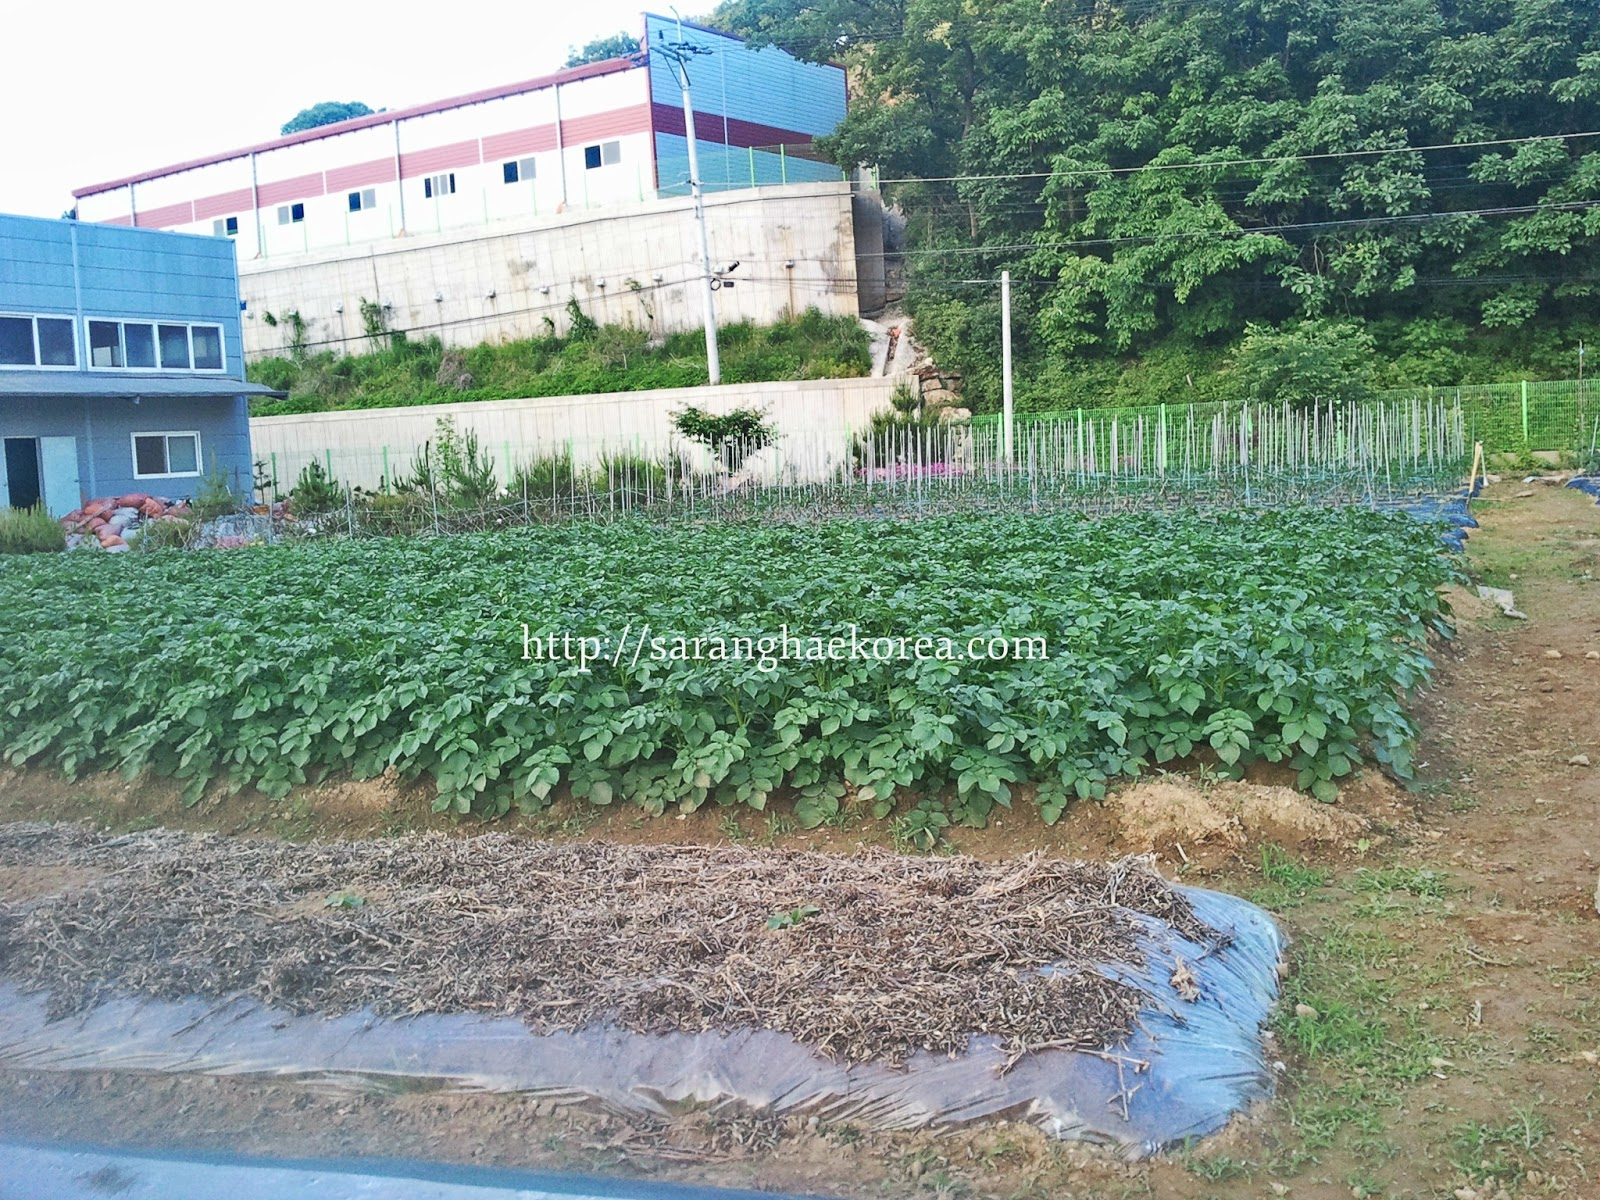 Korean Landscape Garden : Saranghae korea farming ideas in that we should imitate